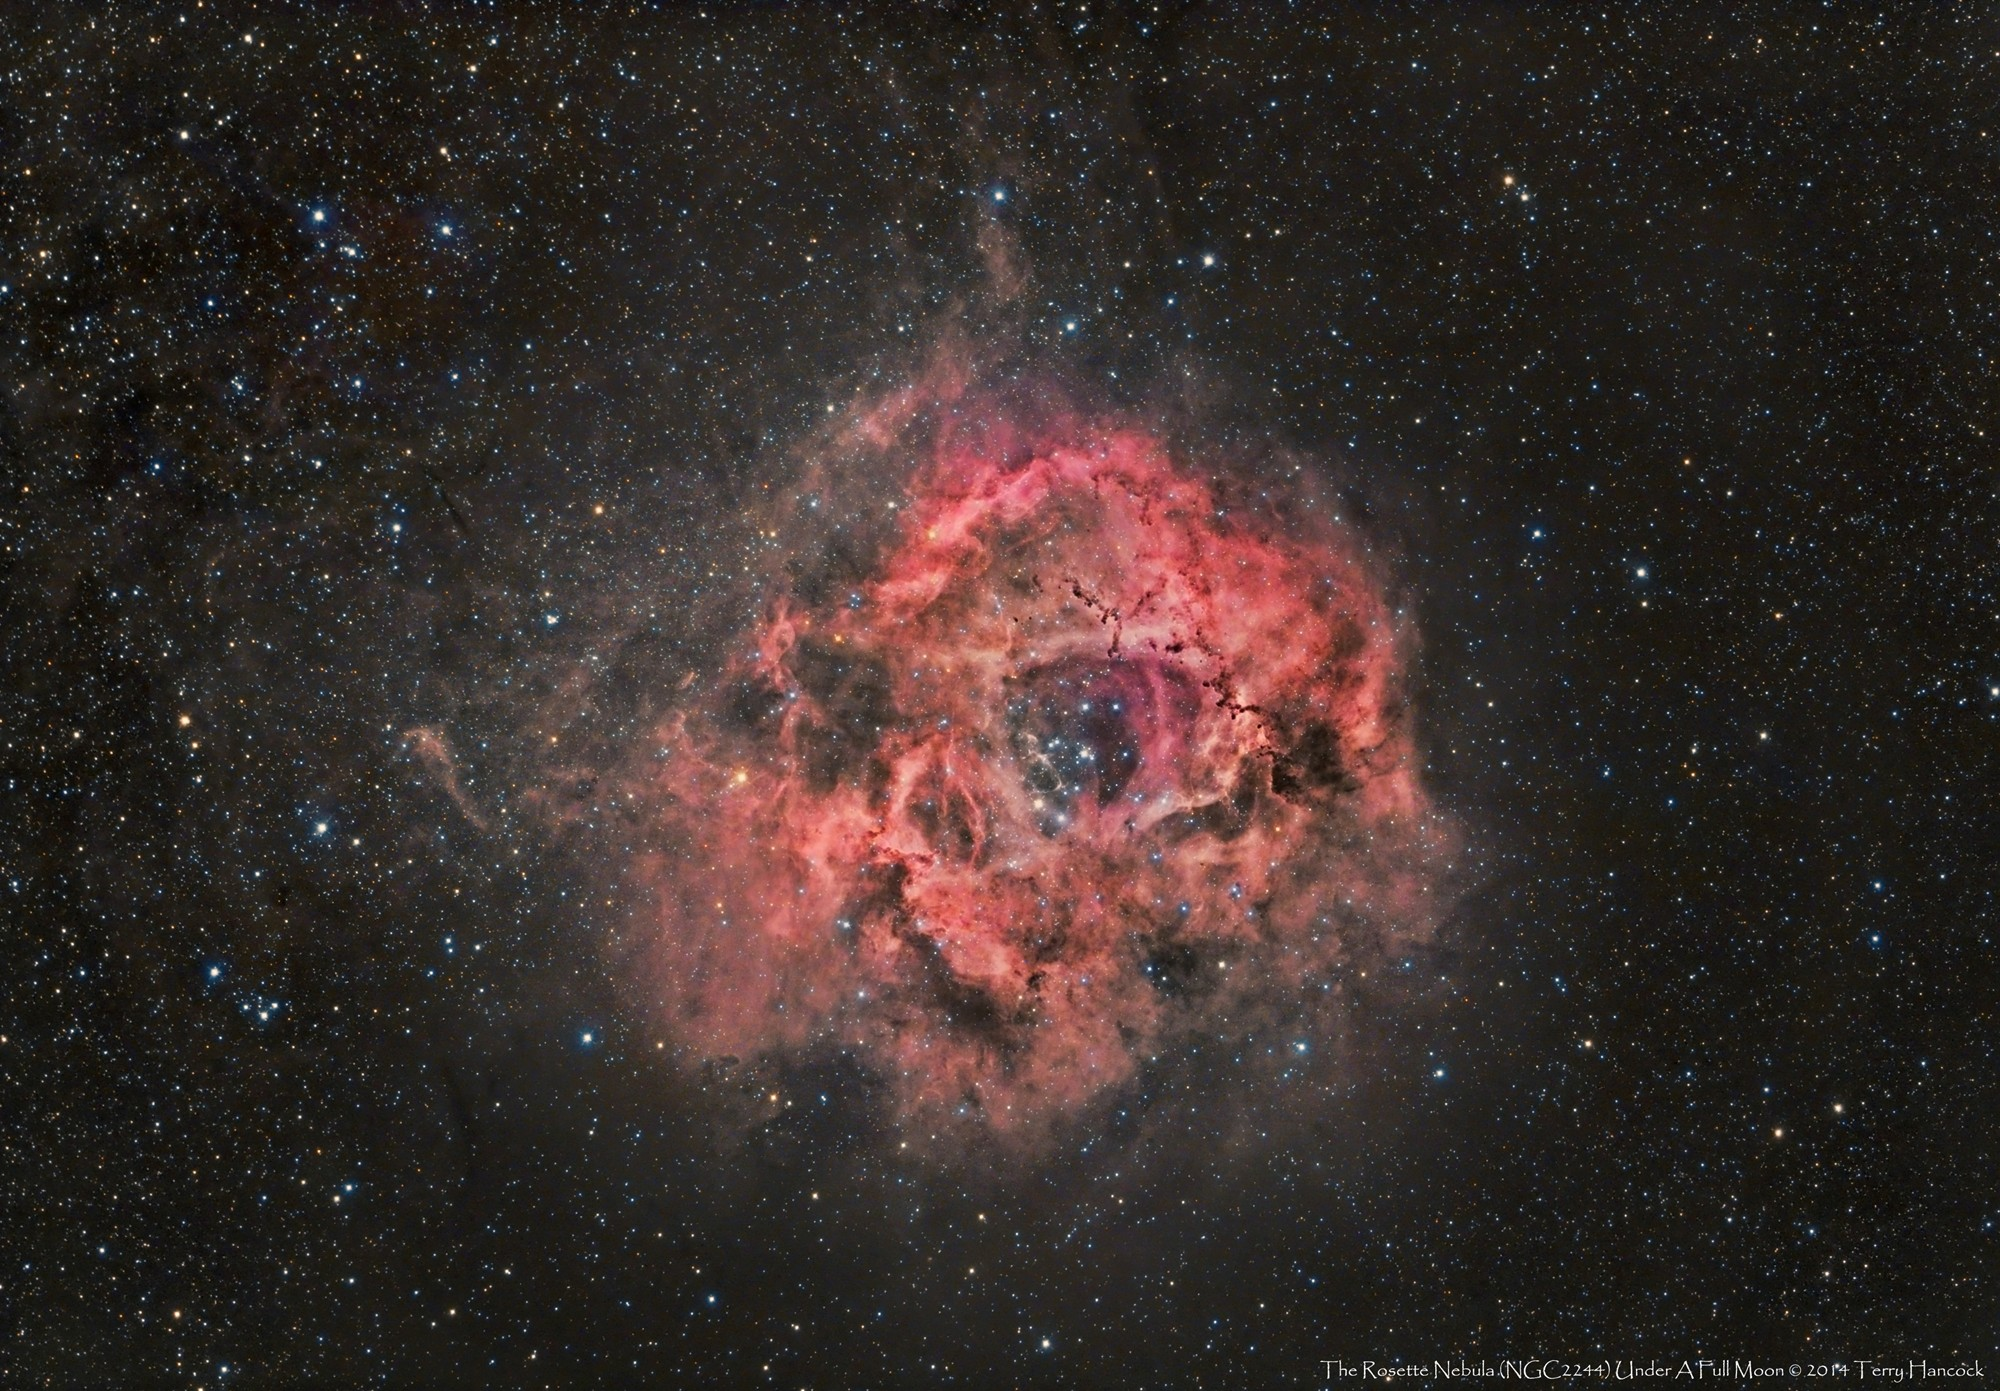 Rosette Nebula Blooms with Color in Amazing Amateur Photo